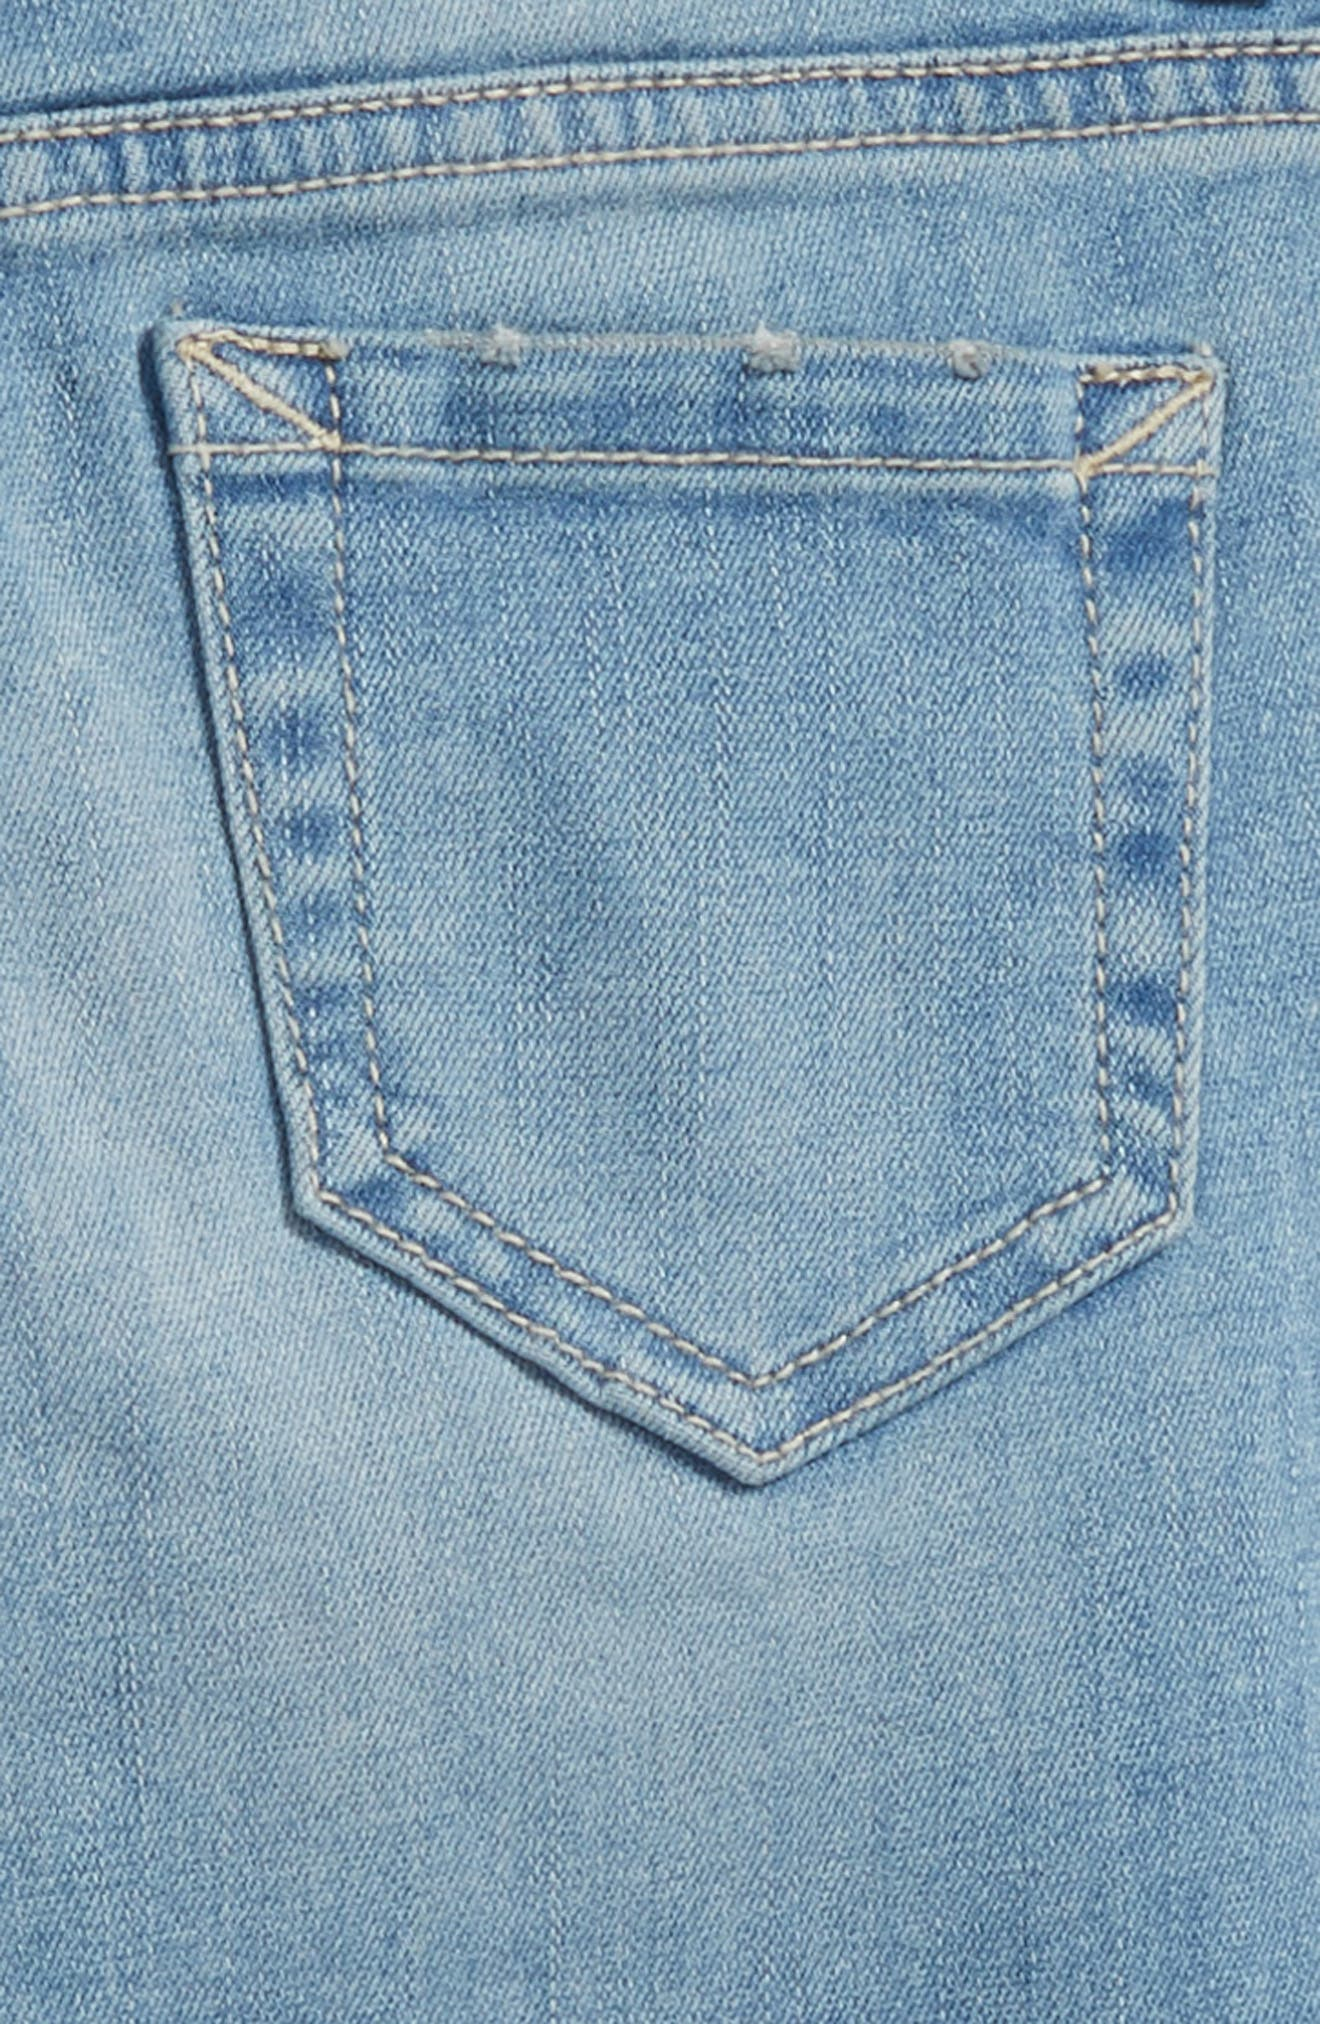 Patch Knee Jean,                             Alternate thumbnail 3, color,                             420